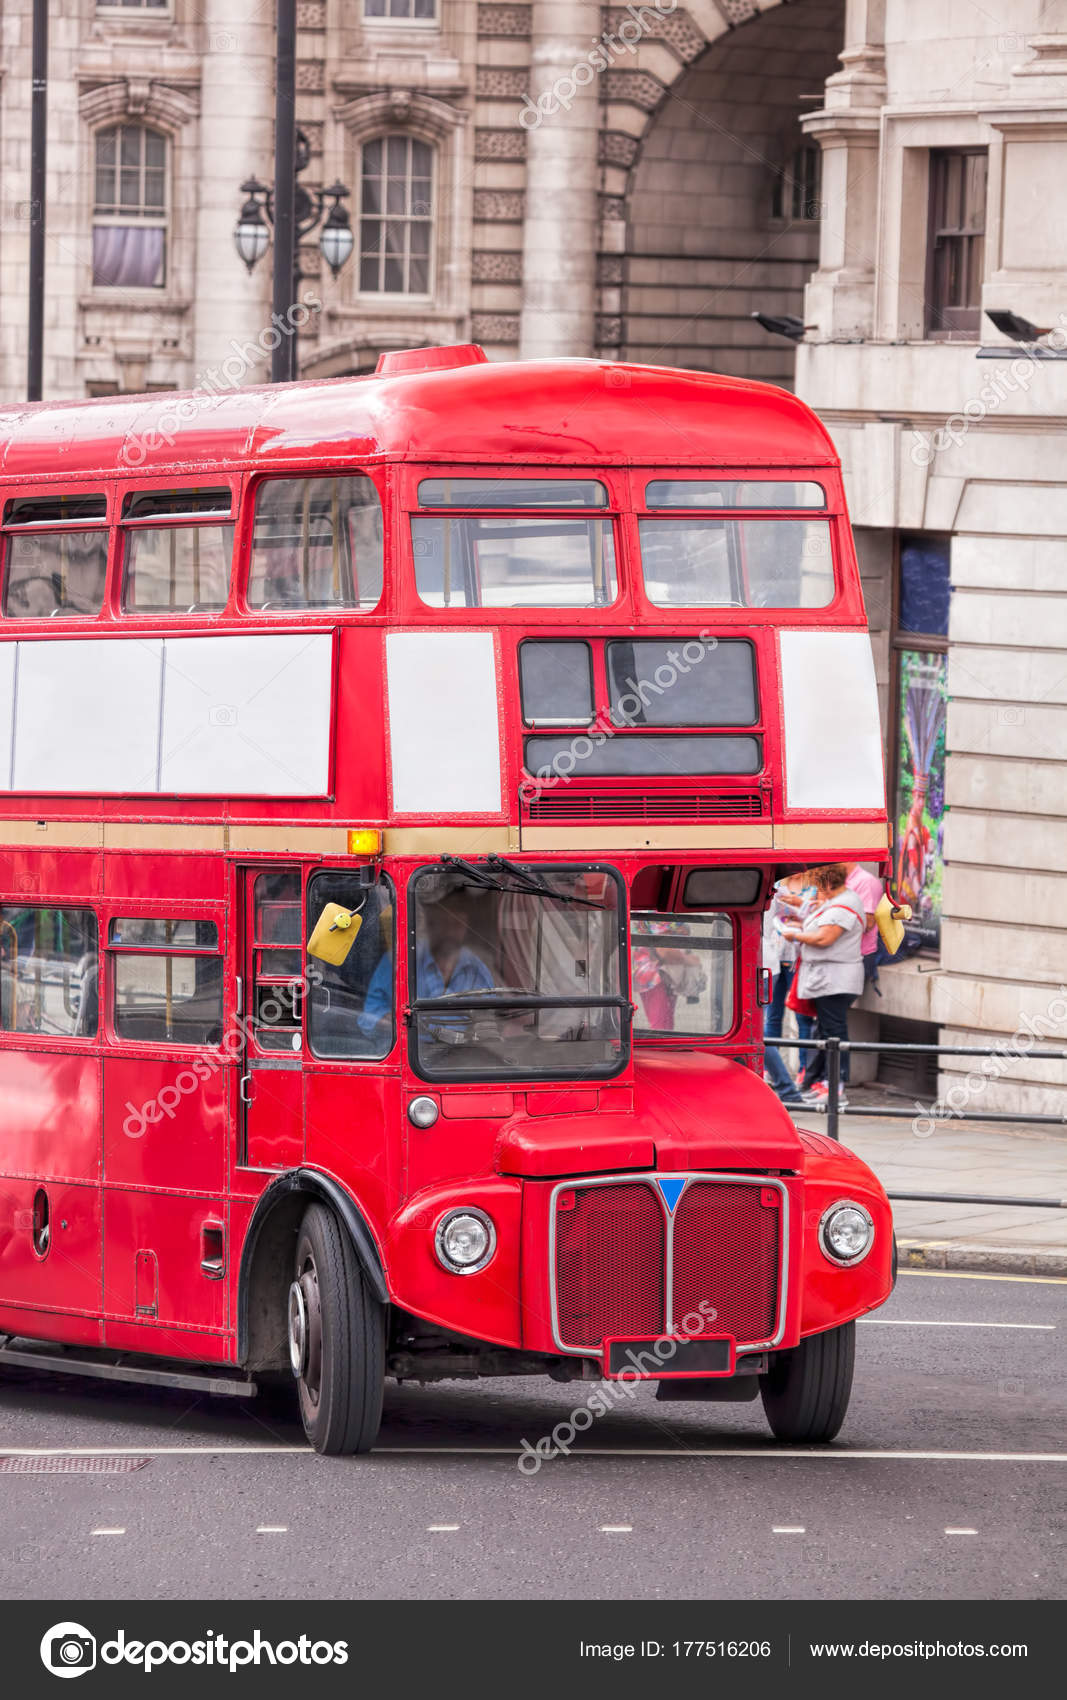 bus rouge deux tages londres angleterre ru photo ditoriale samot 177516206. Black Bedroom Furniture Sets. Home Design Ideas